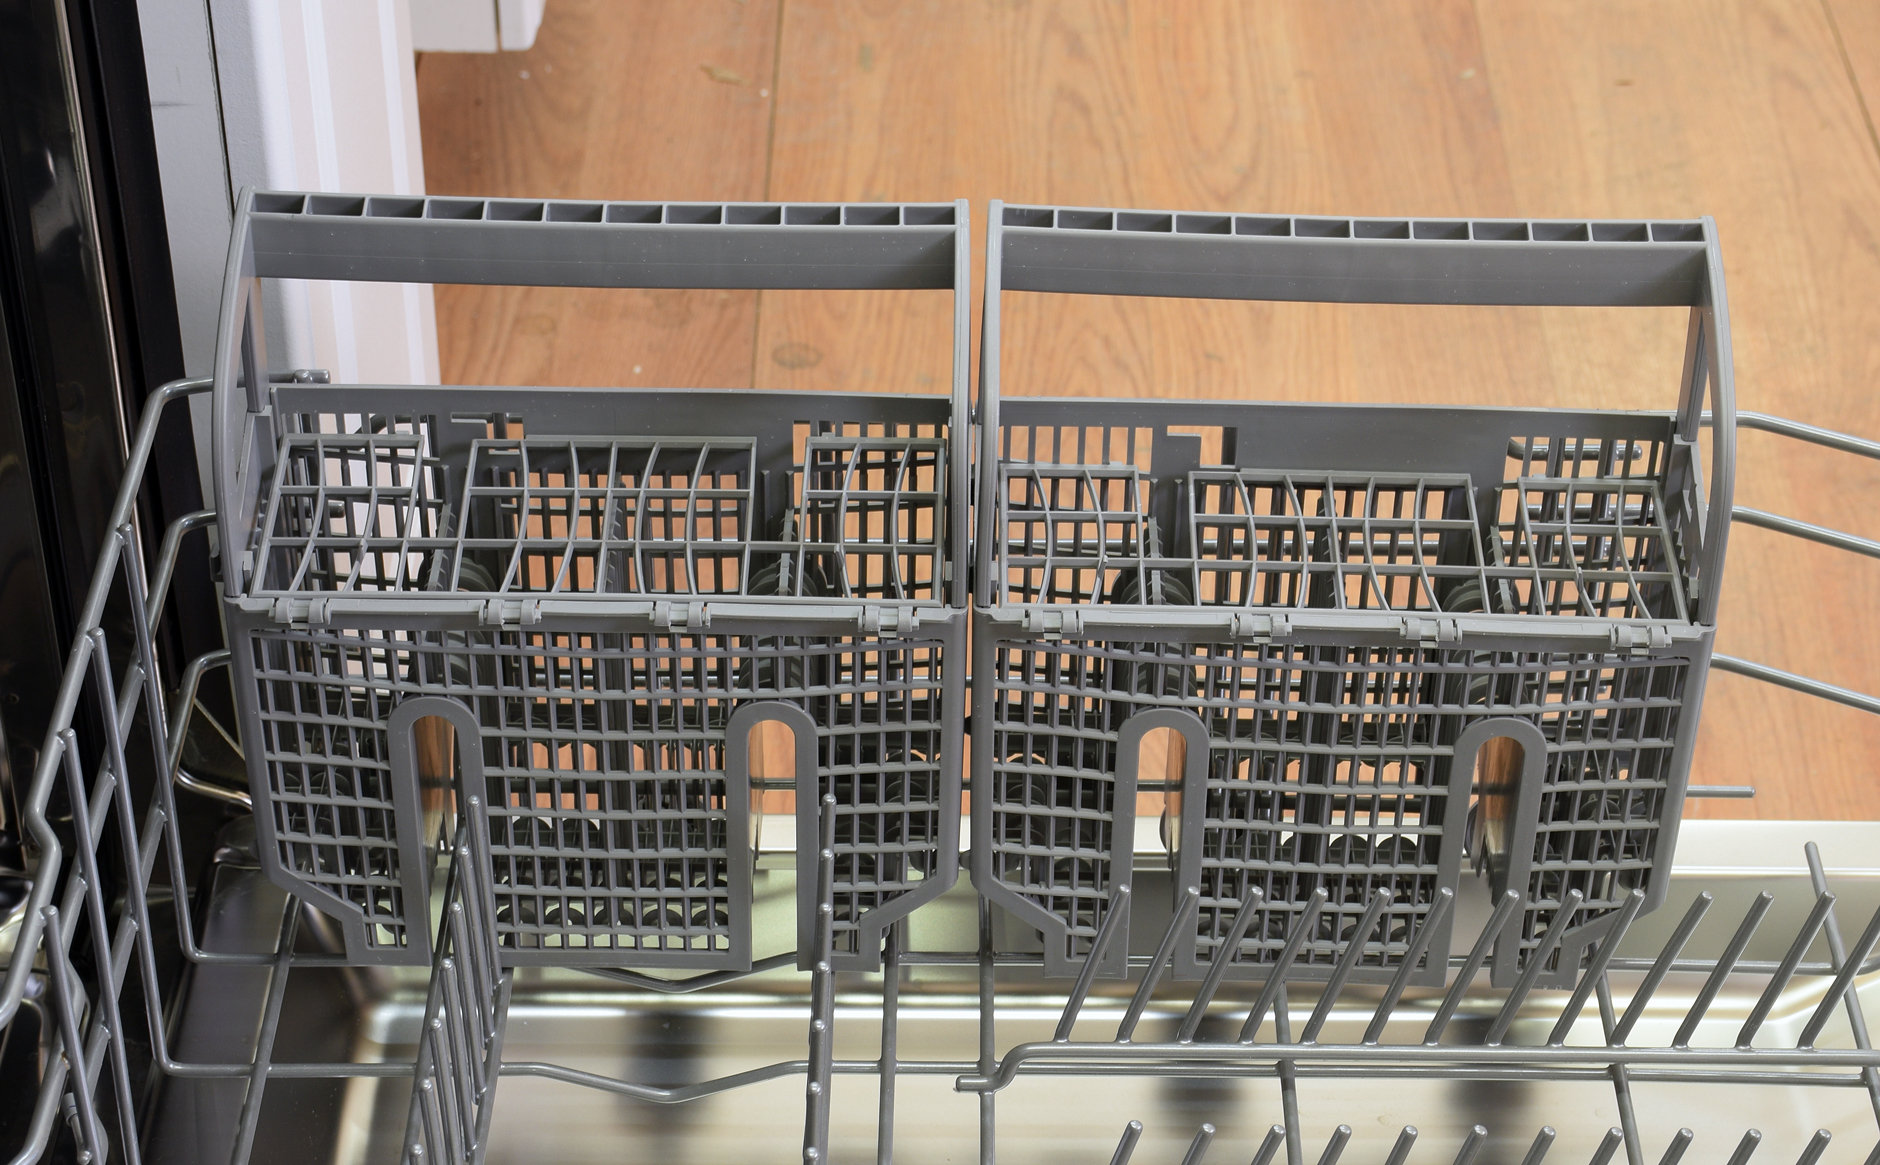 The Bosch SHP65TL5UC's plastic cutlery holder